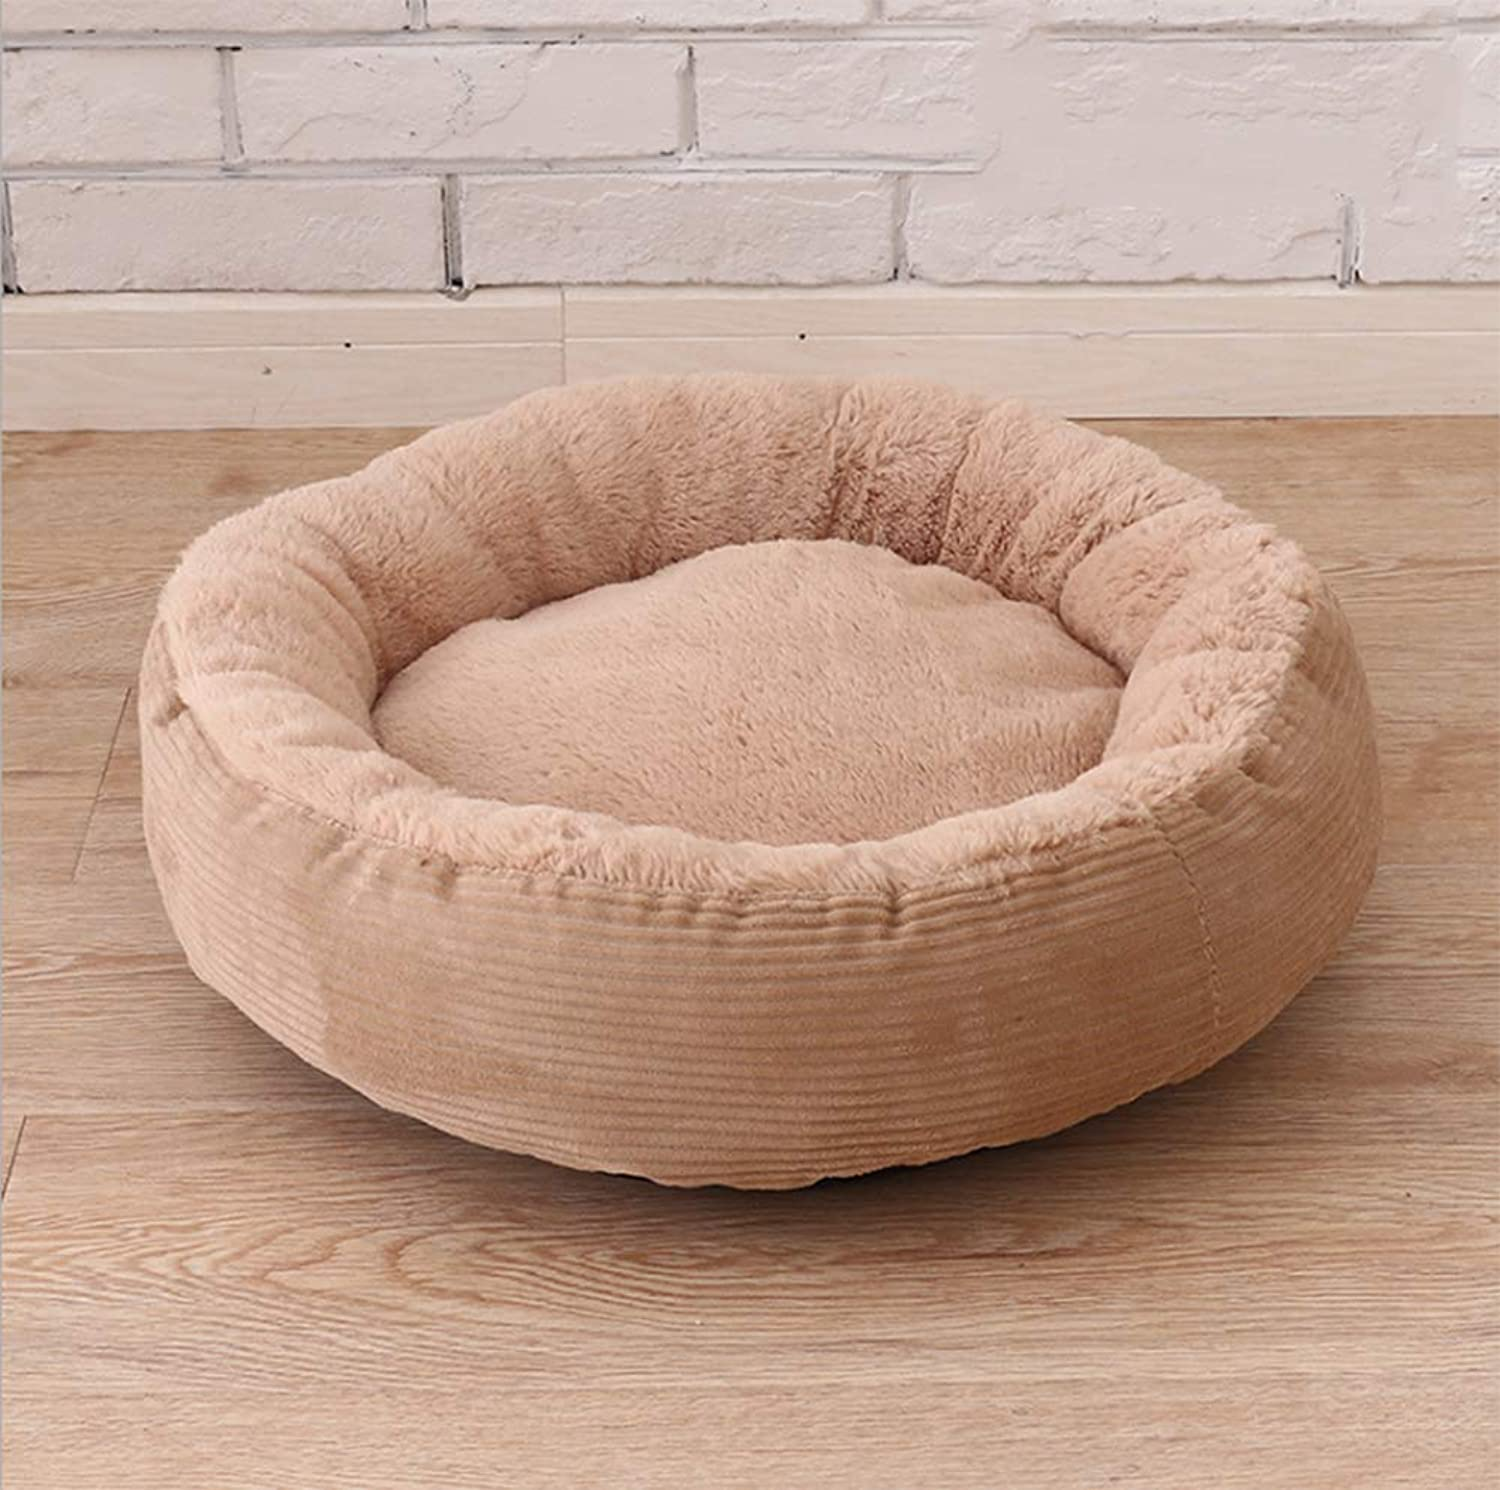 2018 Autumn and Winter New Pet Nest Thick Warm Small and Medium Dogs Can Be Removed and Wash Round Kennel Cat Litter